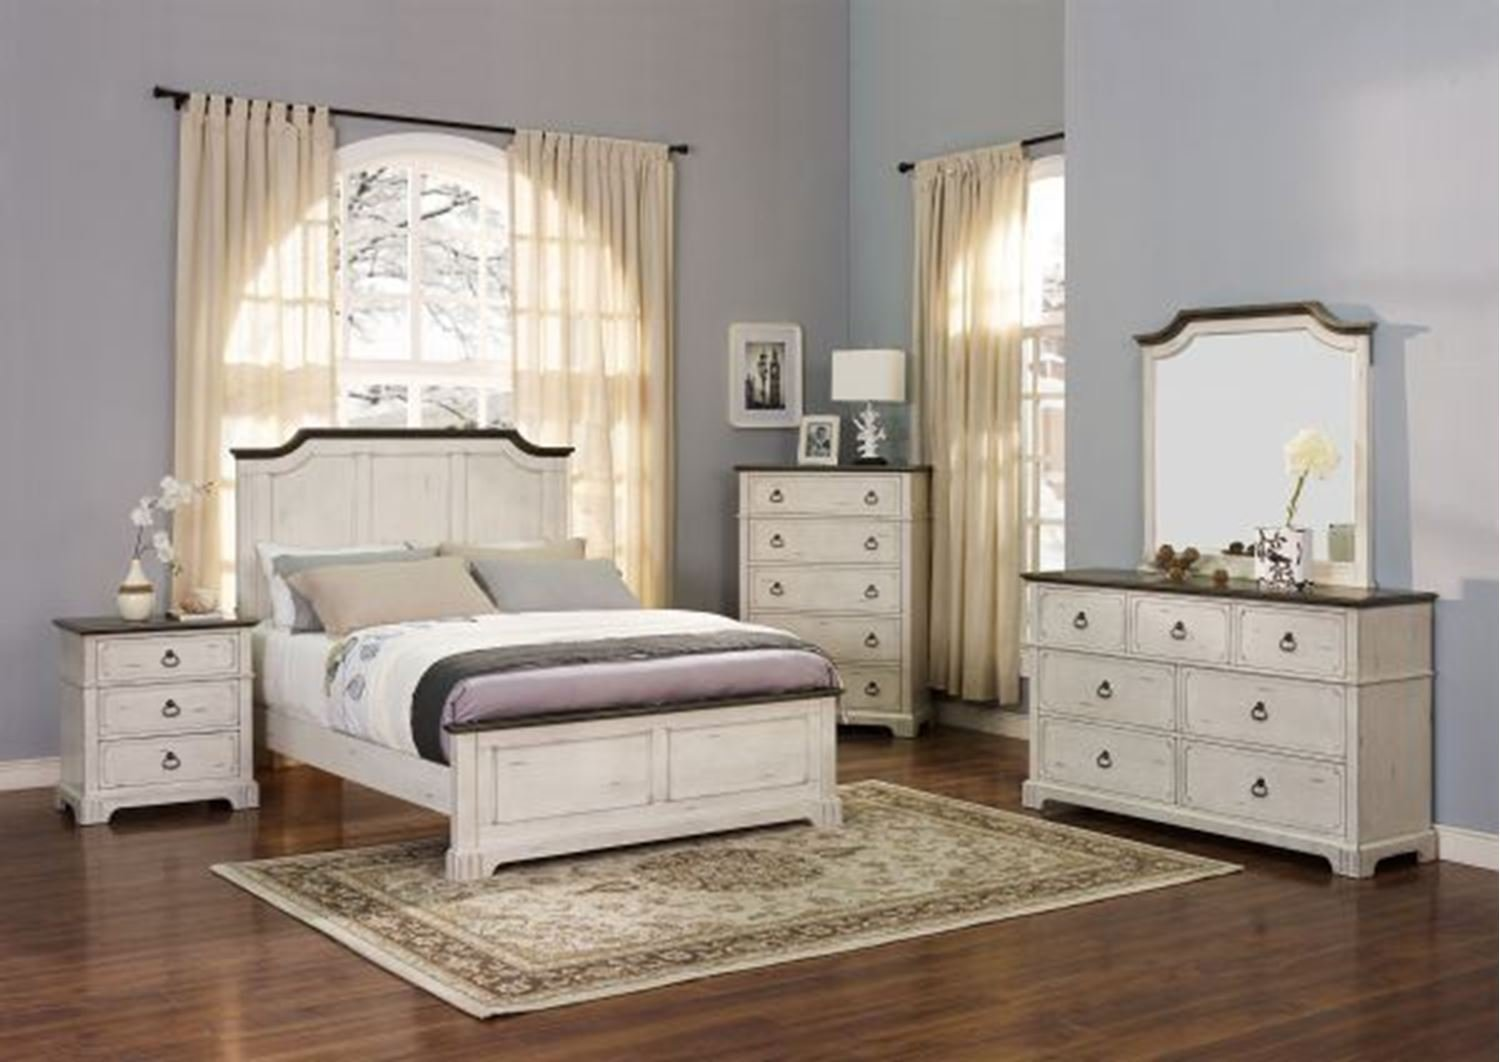 Best Abby Queen Bedroom Set Walker Furniture Las Vegas With Pictures